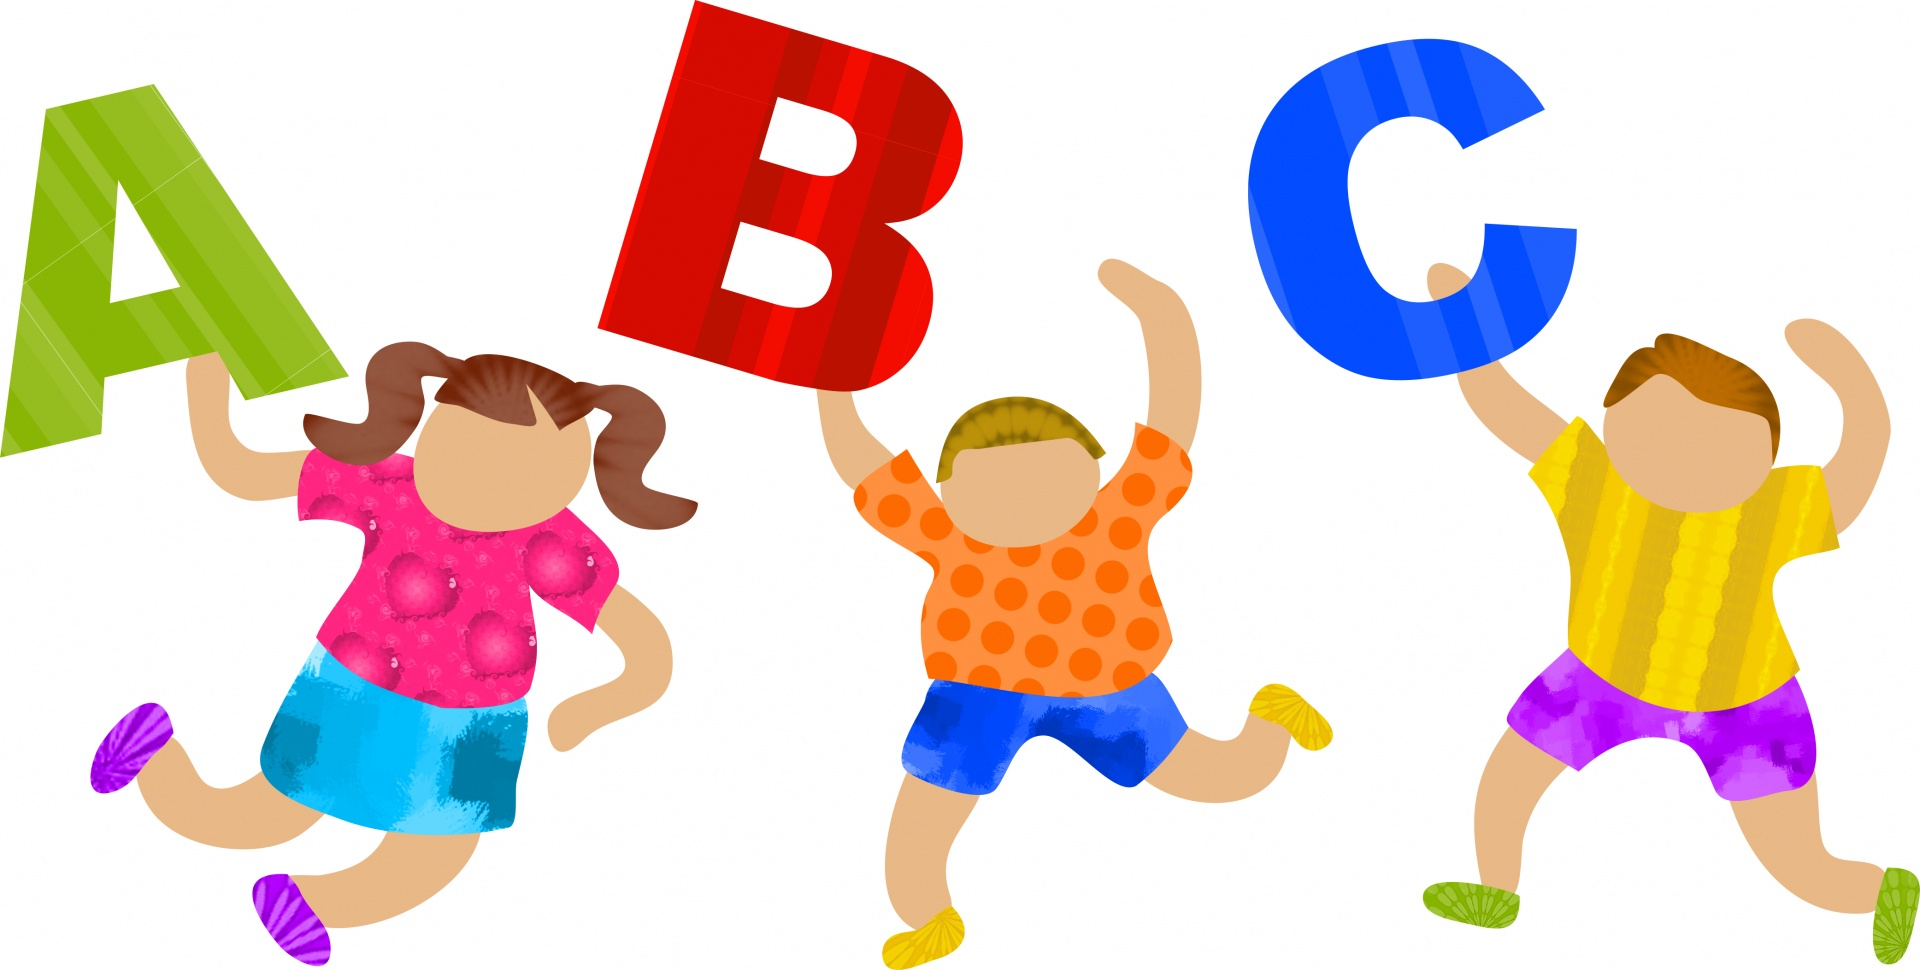 Abc with kids clipart picture freeuse stock abc-kids - picture freeuse stock